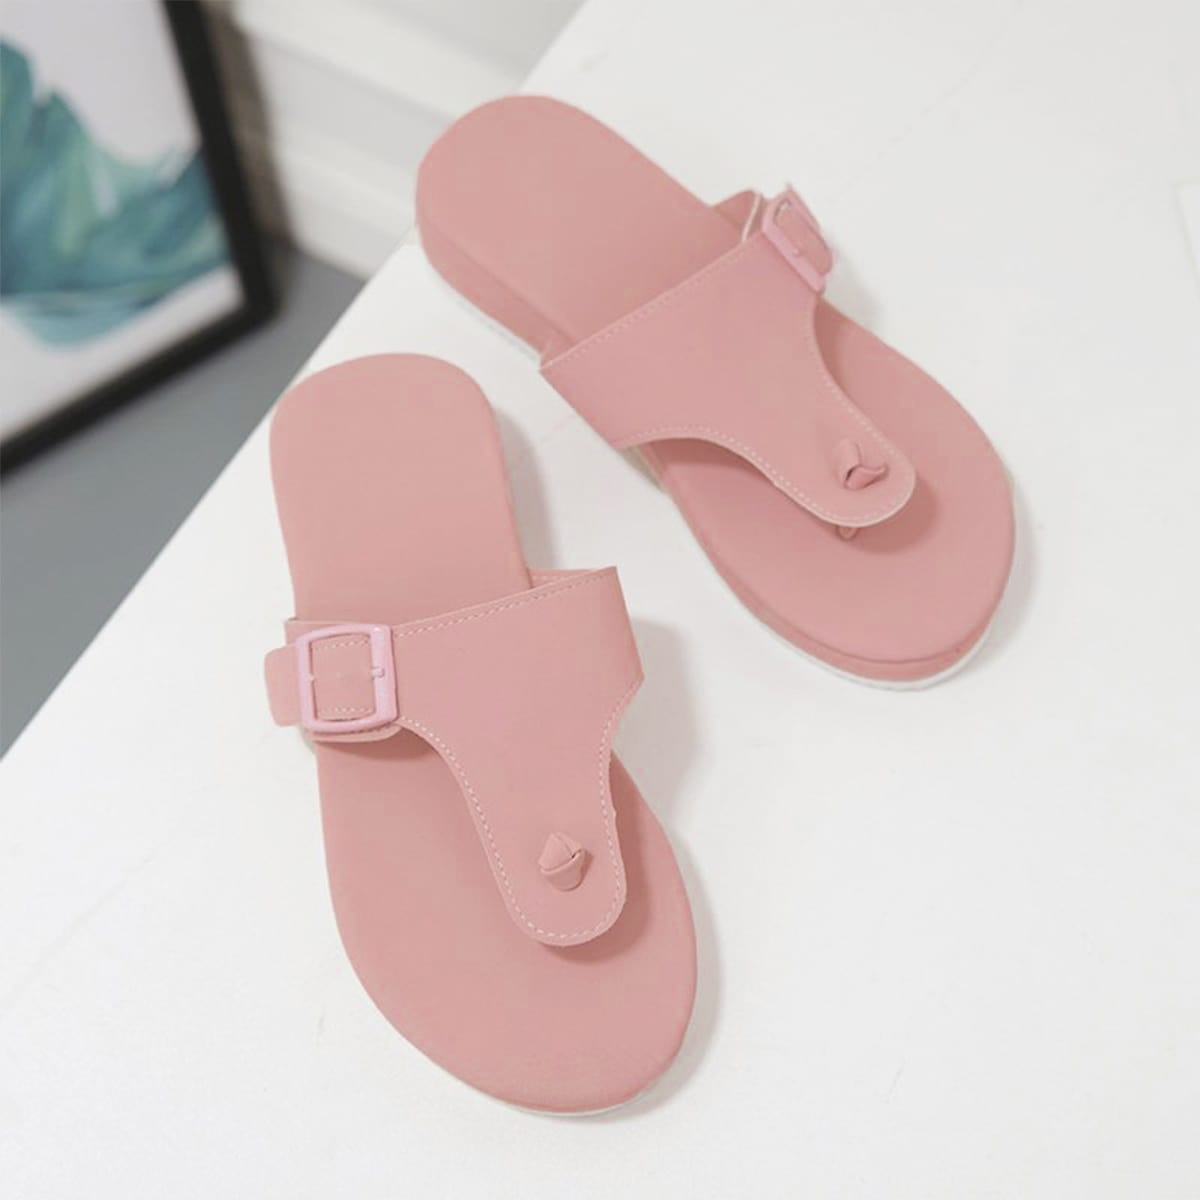 SHEIN / Minimalist Buckle Decor Thong Sandals